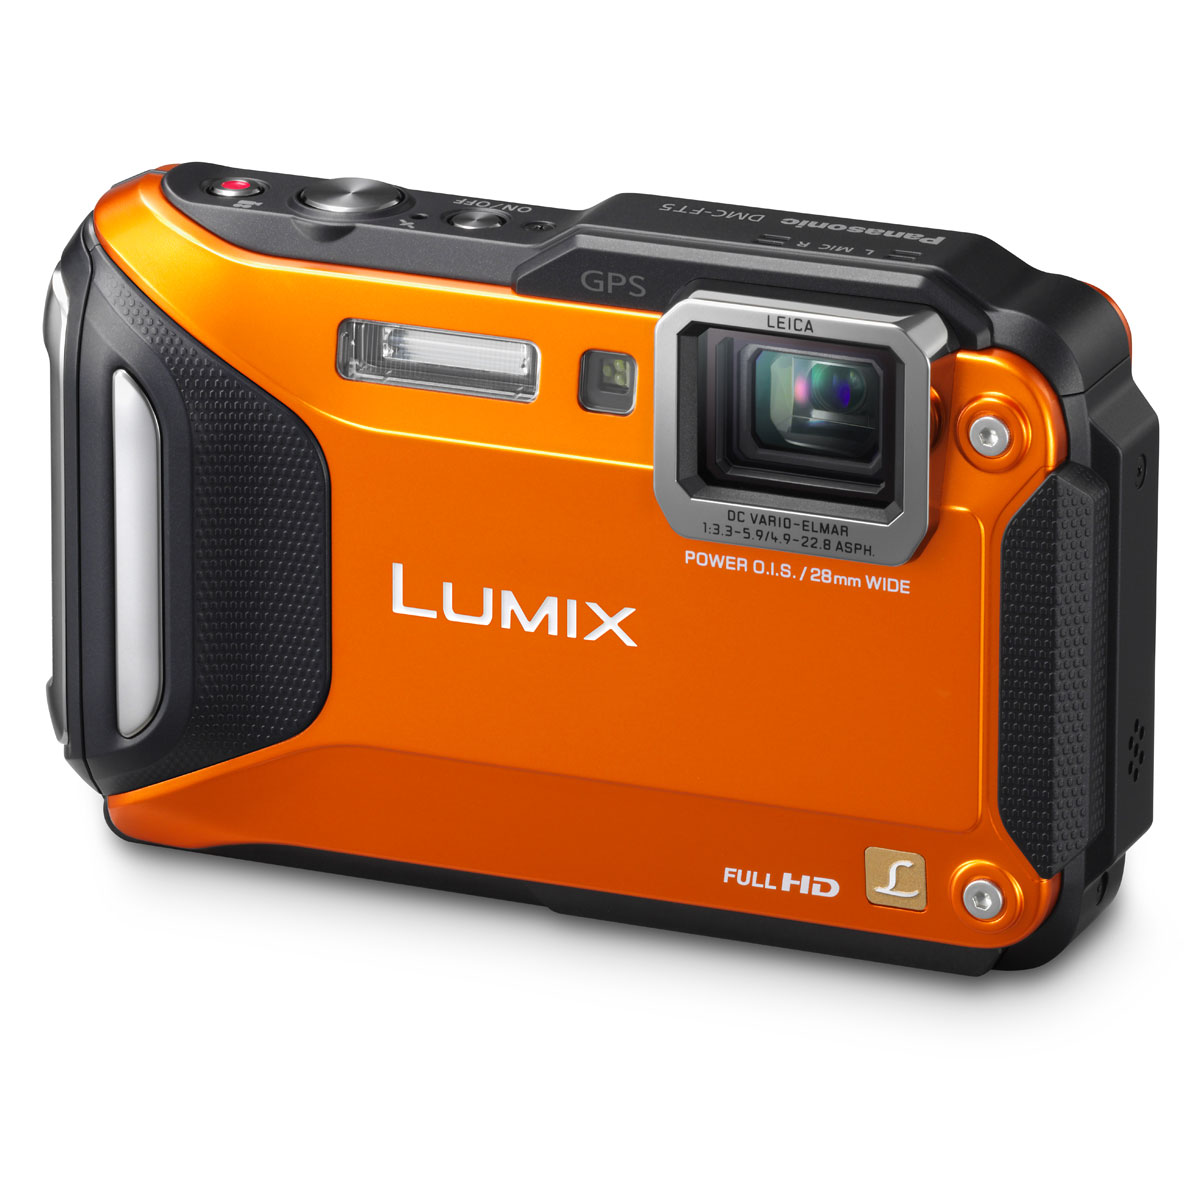 Appareil photo numérique Panasonic DMC-FT5 Orange Appareil photo 16.1 MP - Zoom 4.6x - Vidéo Full HD - Wi-Fi